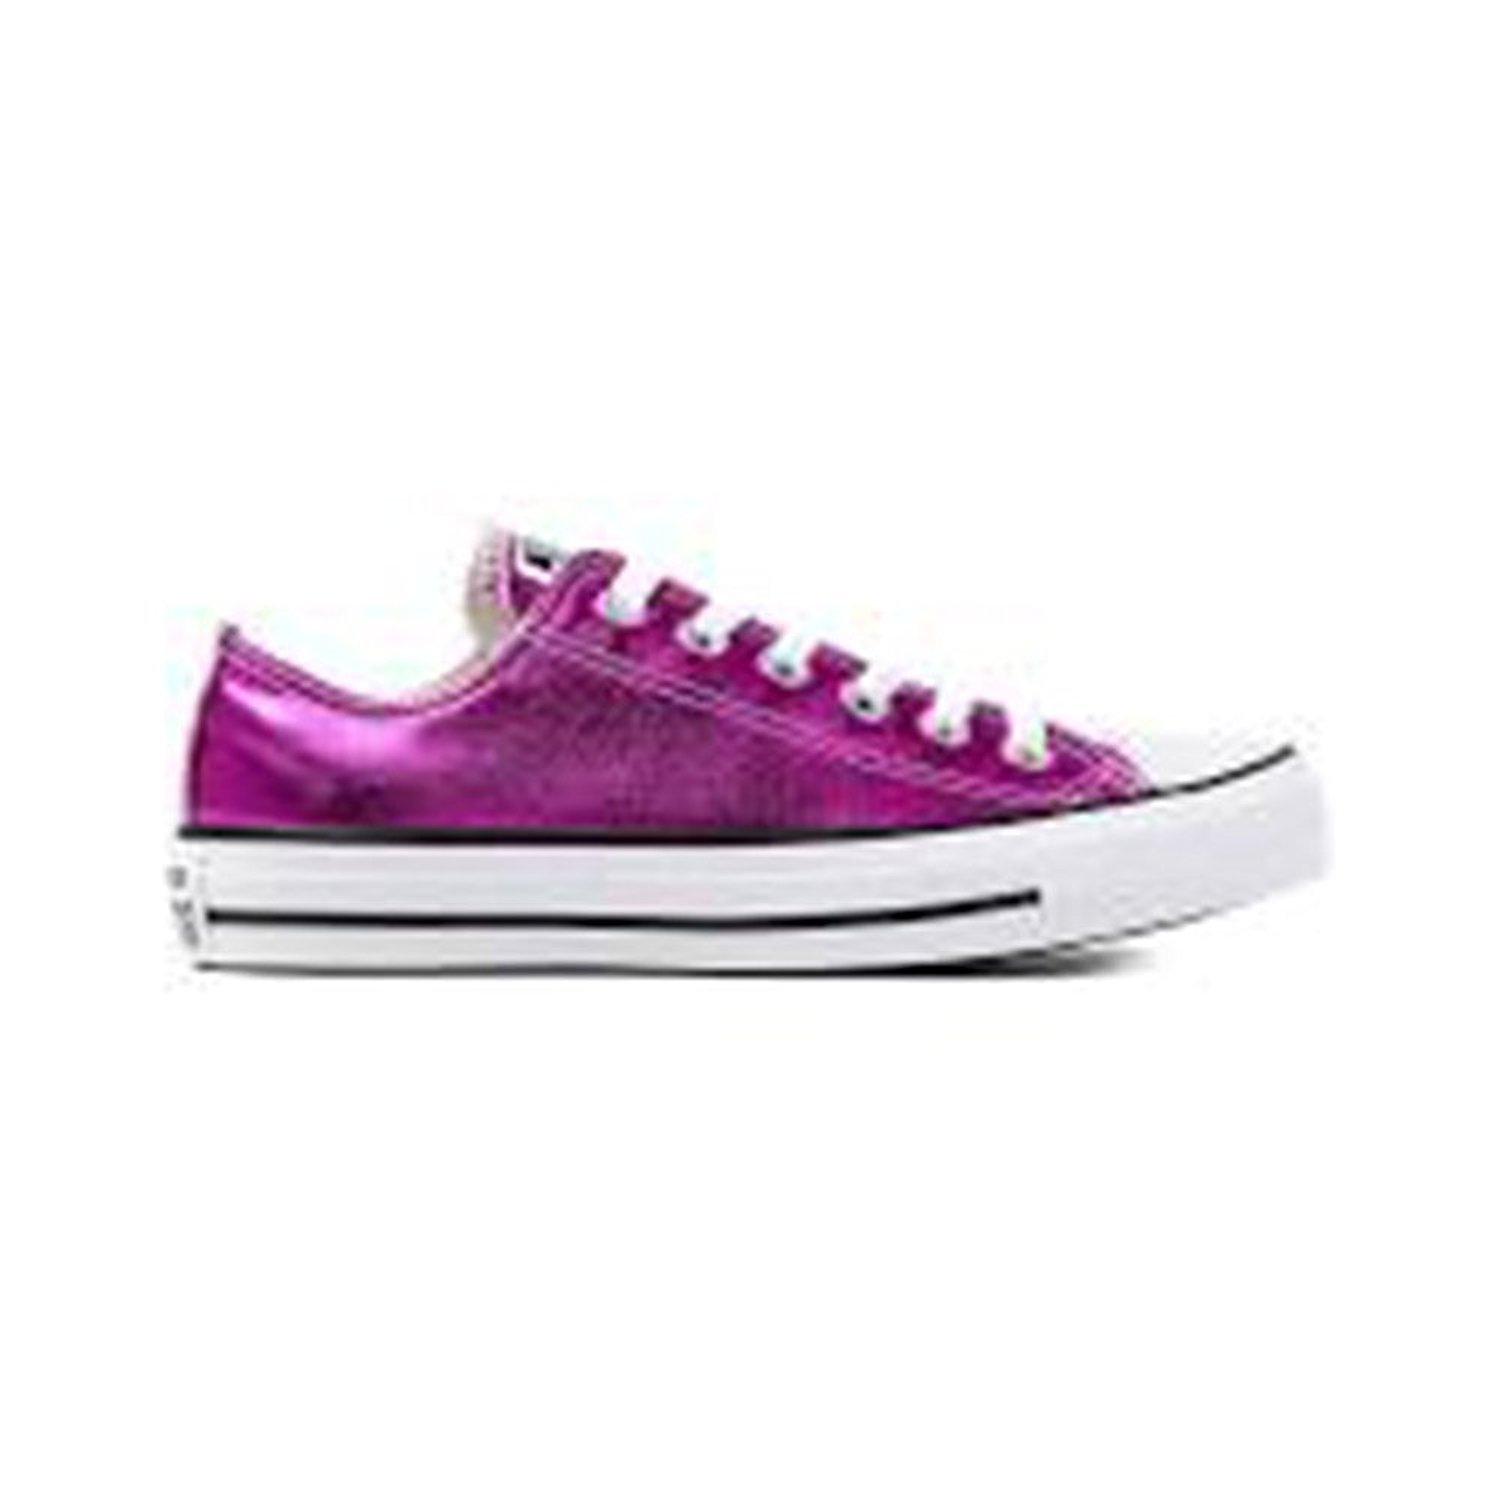 premium selection 70633 6c440 Converse AS Hi Can charcoal 1J793 Unisex-Erwachsene Sneaker Mens 5 Womens  7 Magenta